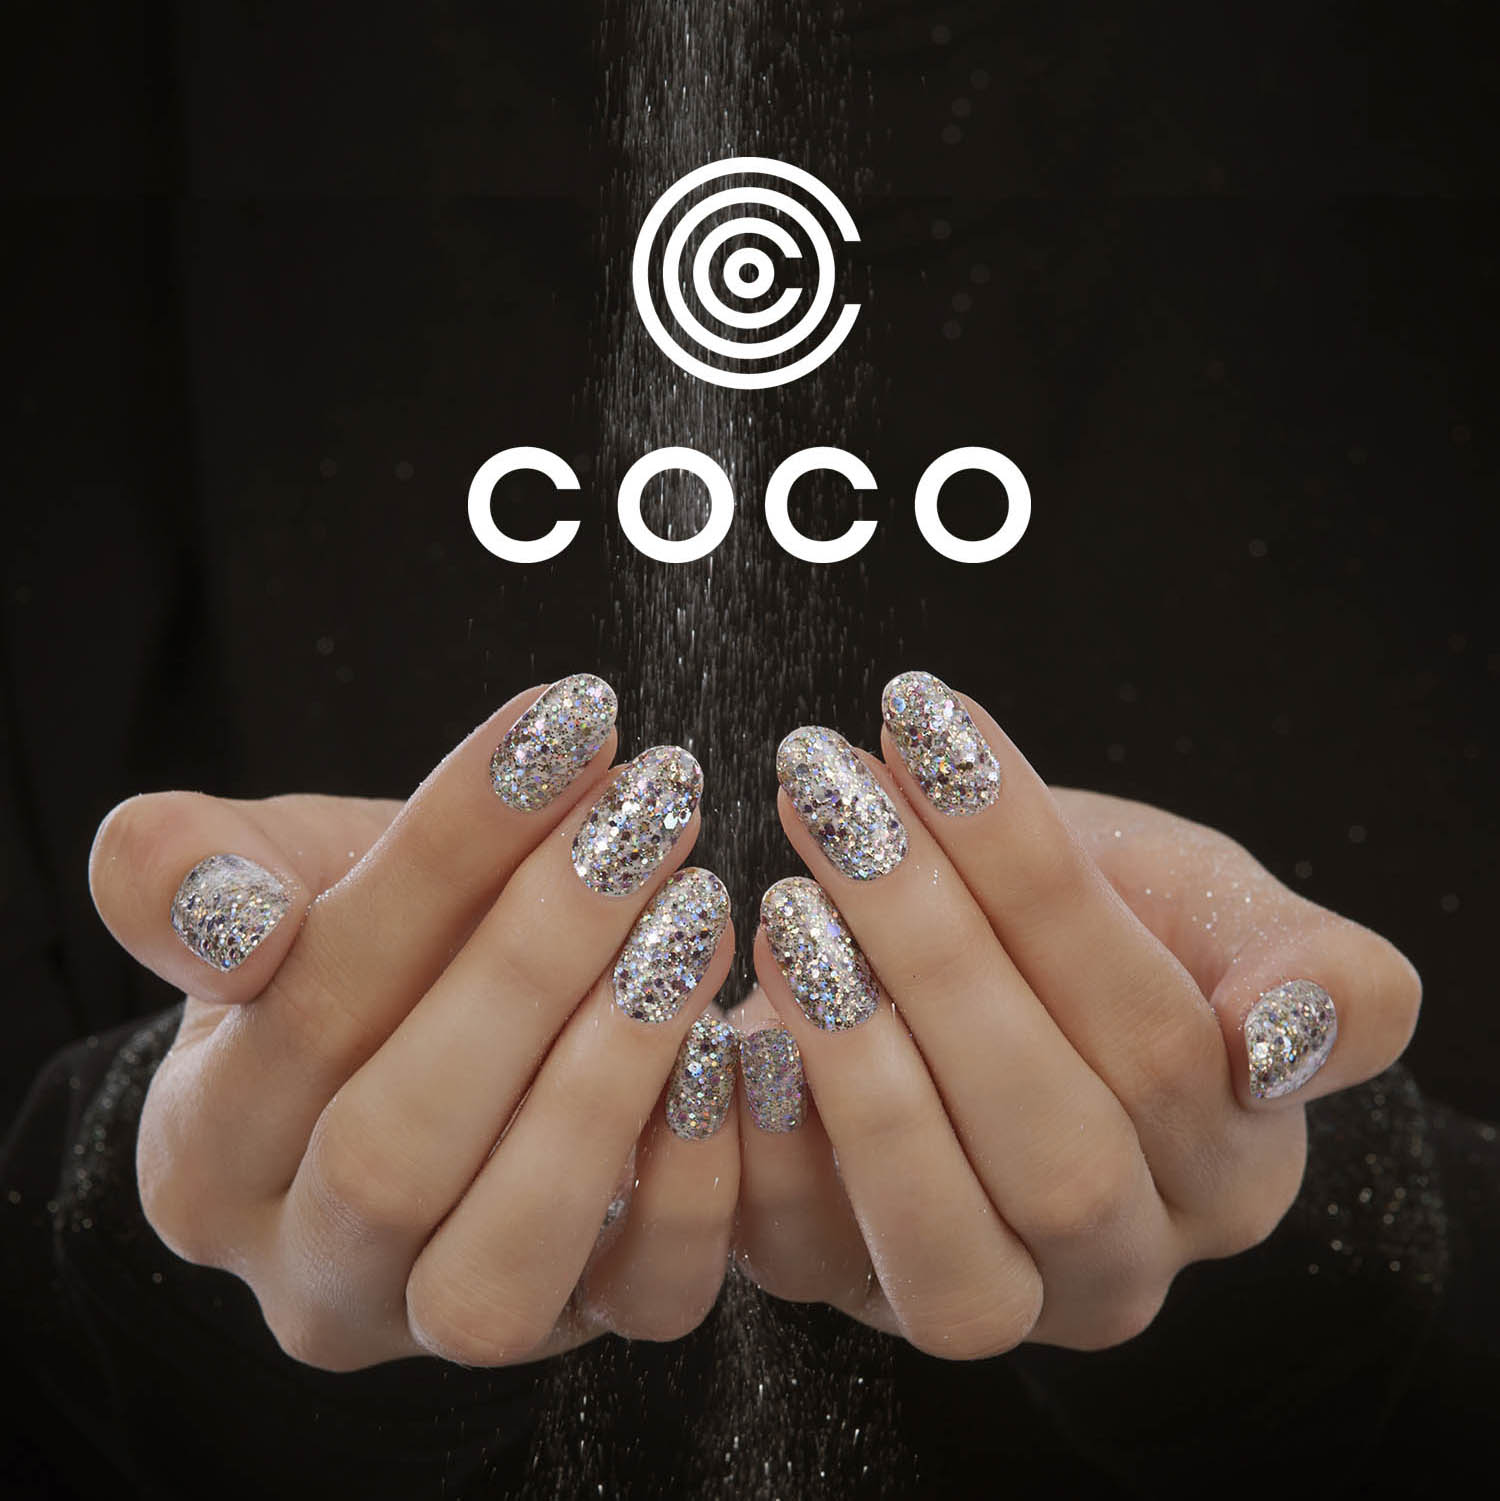 Portfolio project: Coco branding | Beehive Green Design Studio | Logo and Branding Design, WGC, Hertfordshire